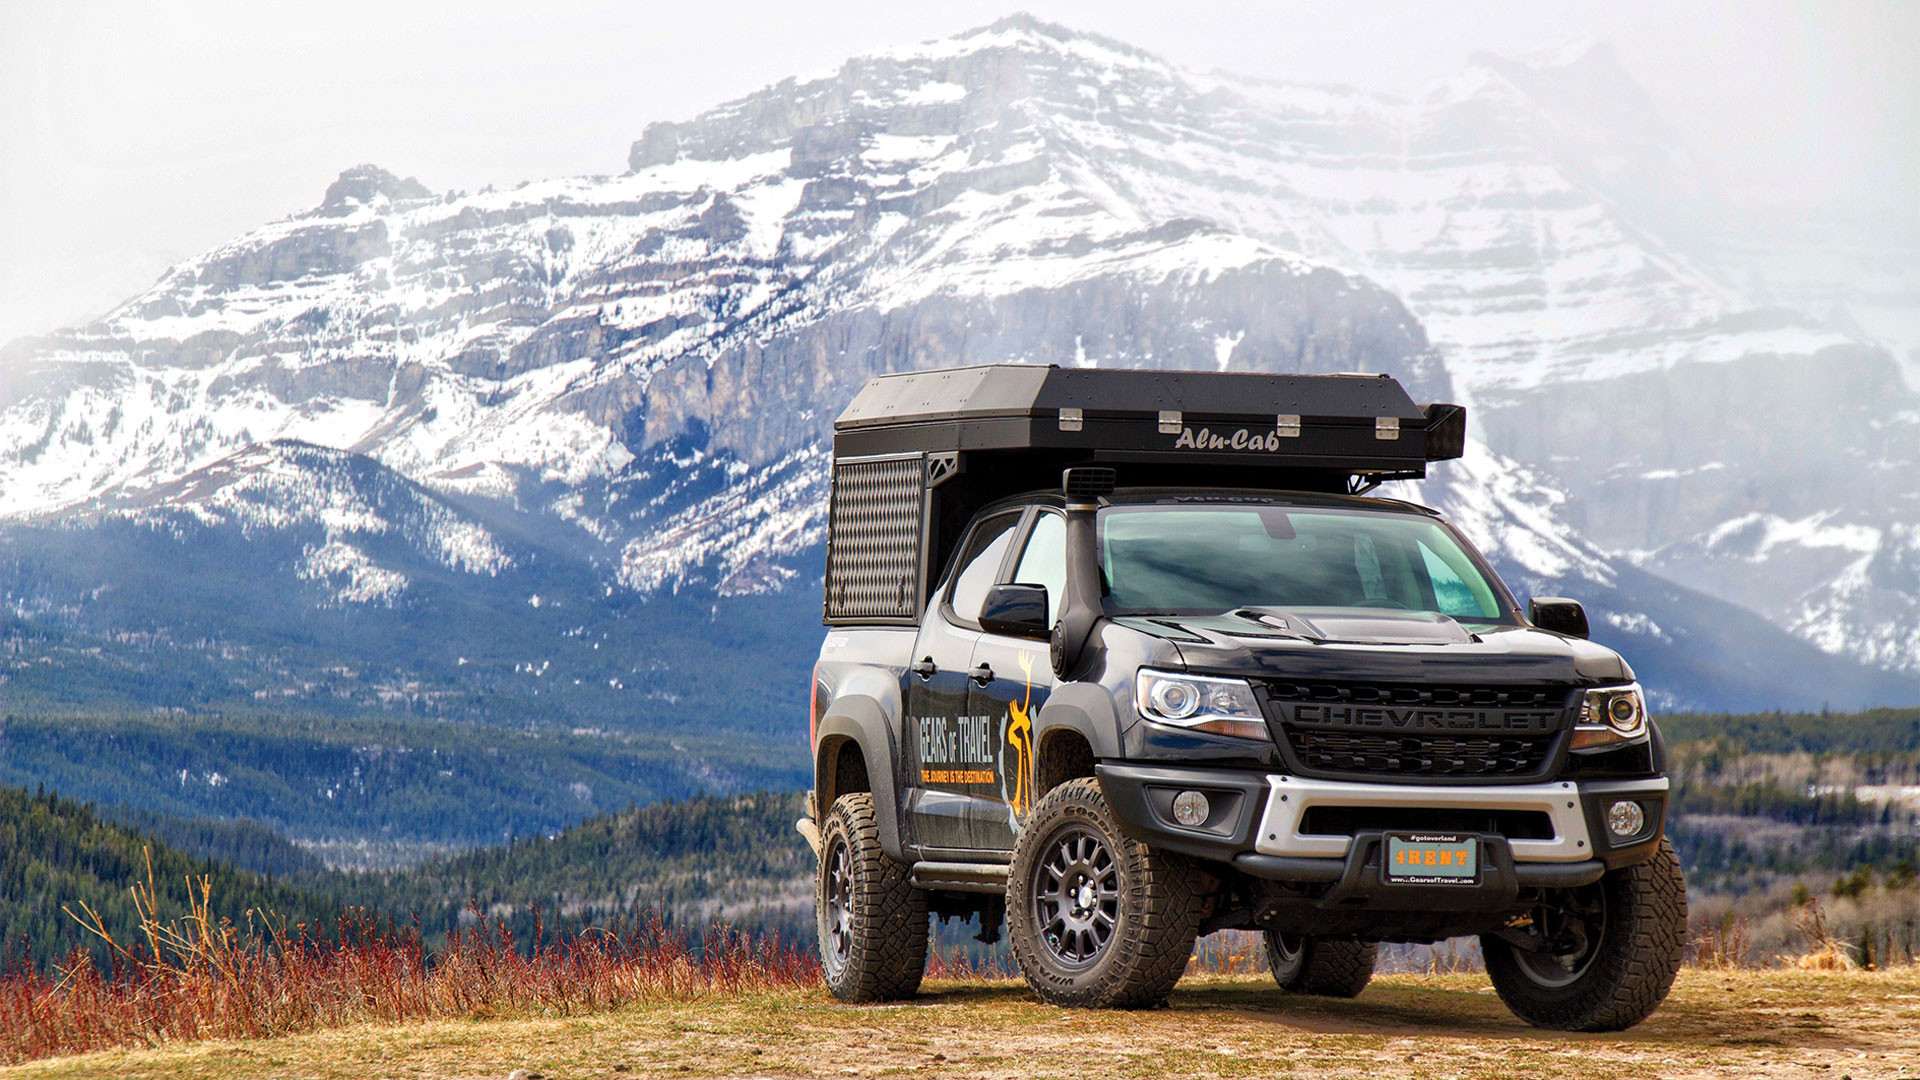 Gears of Travel, Canadian adventure | Chevrolet with canopy camper next to mountains